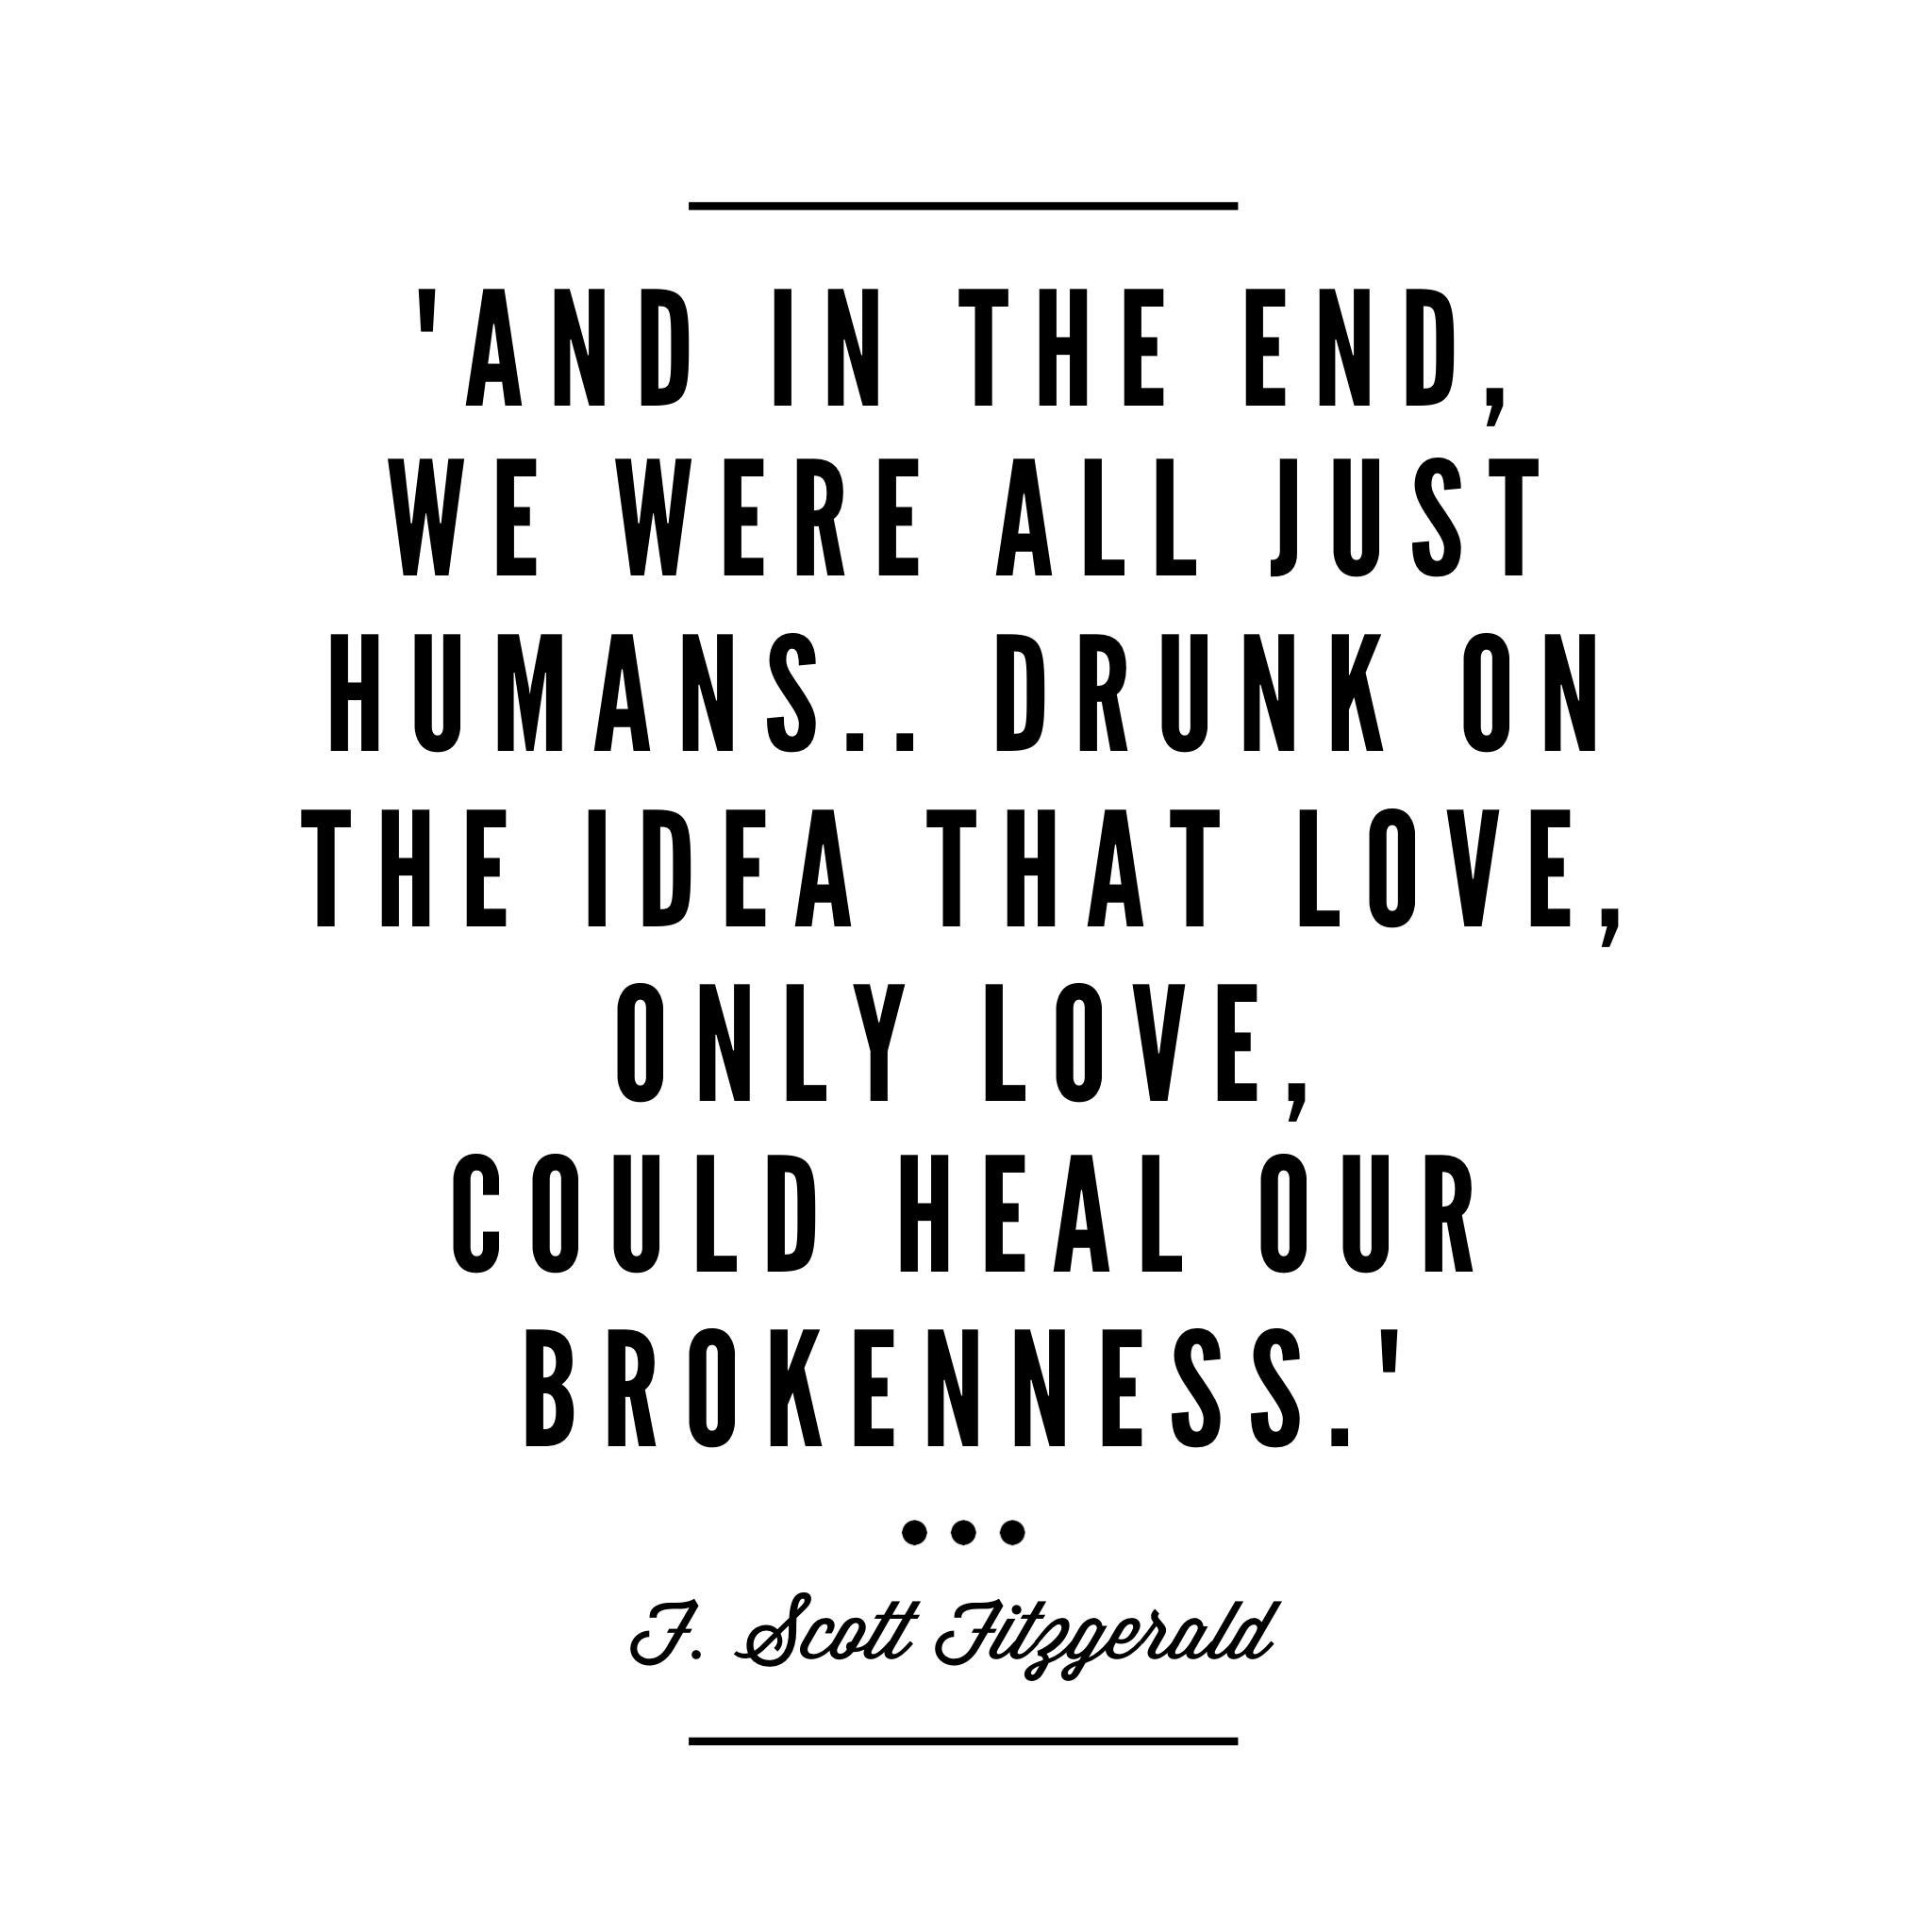 Teen Love Quotes Love Only Love Could Heal Our Brokenness Fscott Fitzgerald